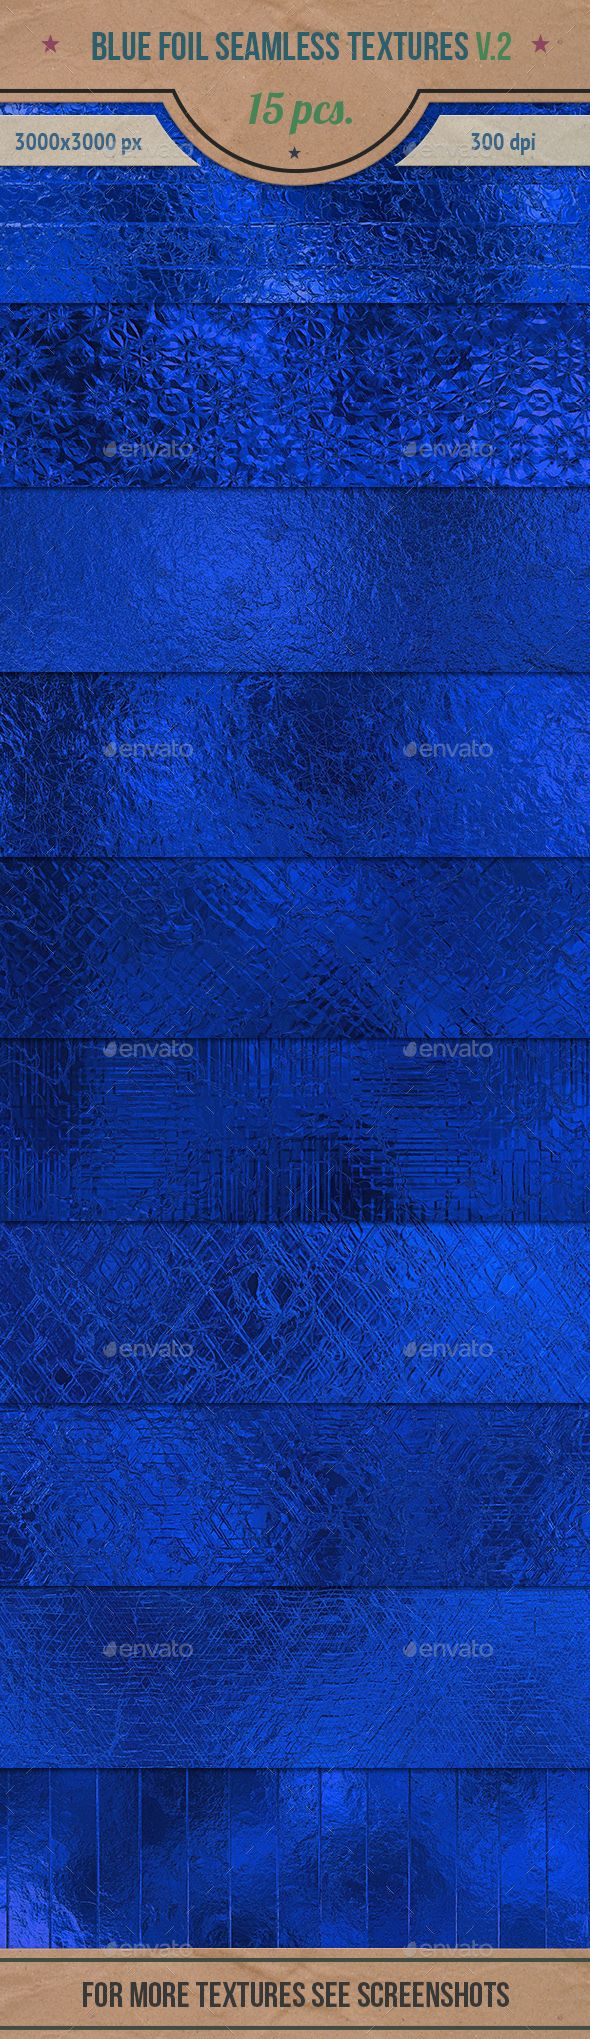 Blue Foil Seamless HD Textures Pack v.2 — Photoshop PSD #pattern #foil texture • Available here → https://graphicriver.net/item/blue-foil-seamless-hd-textures-pack-v2/13984496?ref=pxcr